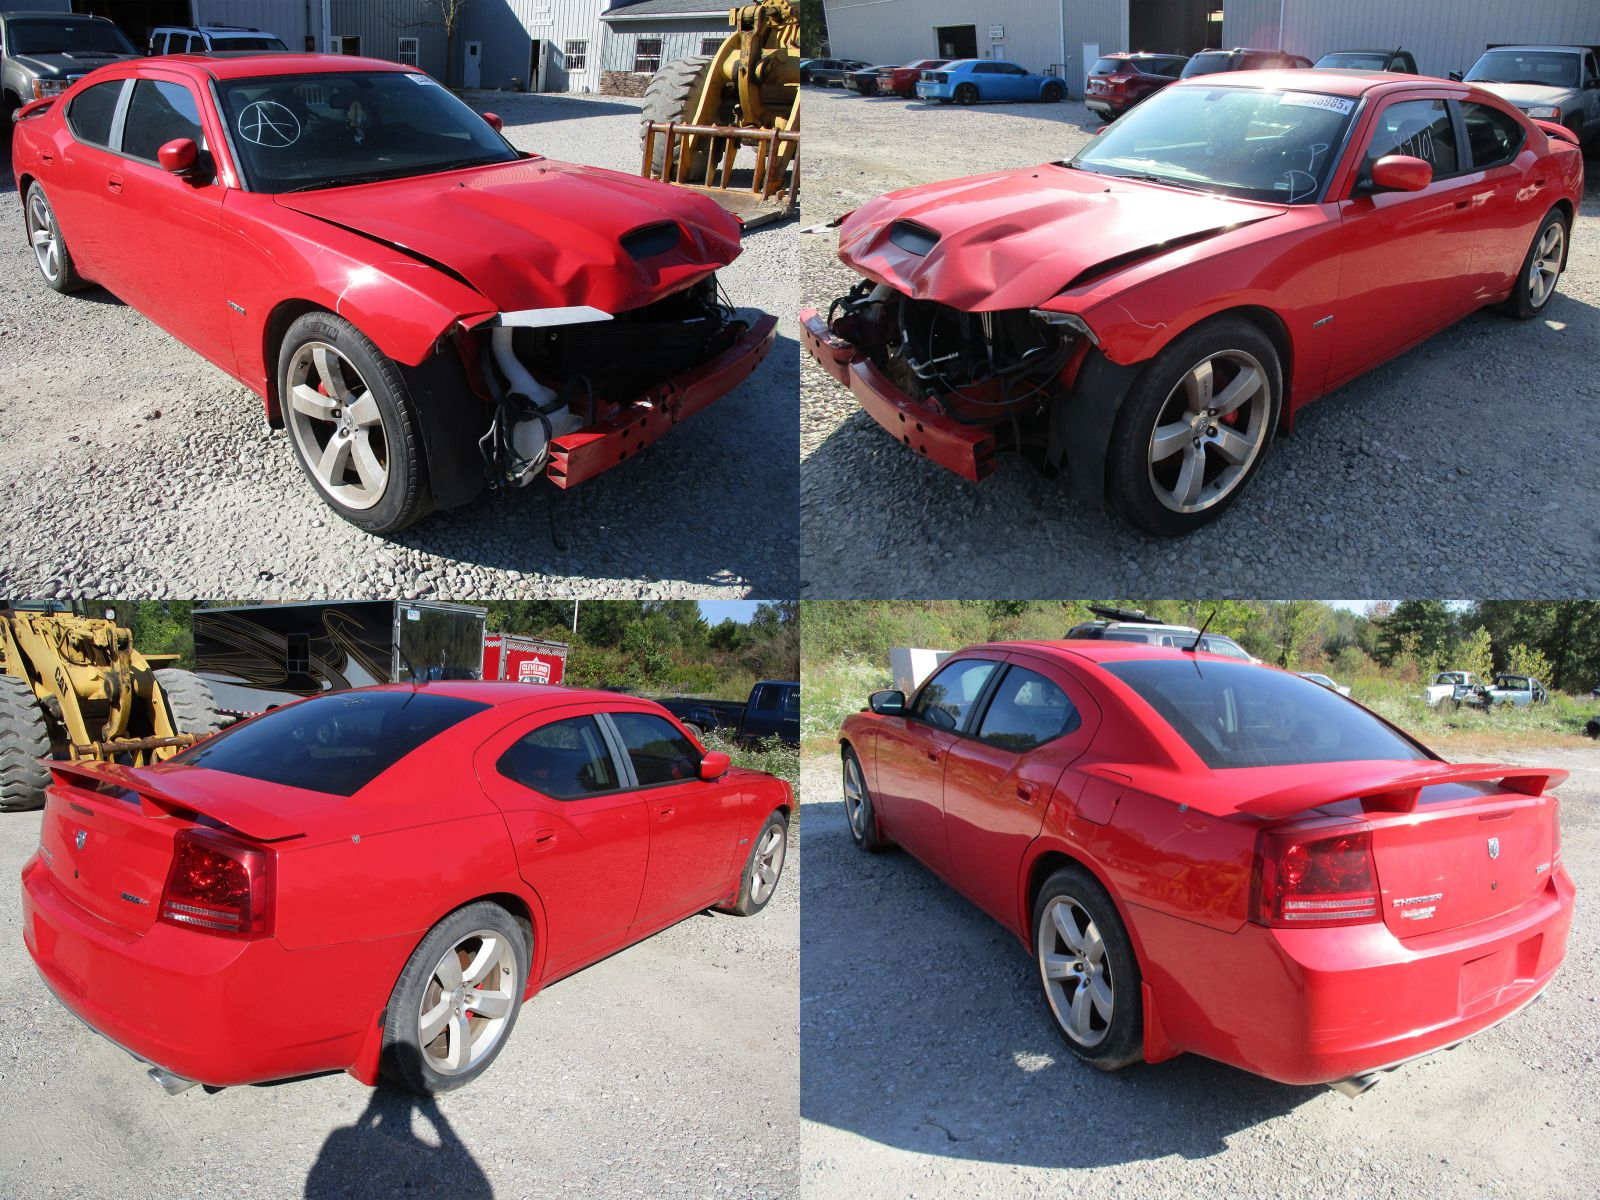 Hellcat For Sale >> 2008 Red Dodge Charger SRT-8 - Cleveland Power & Performance